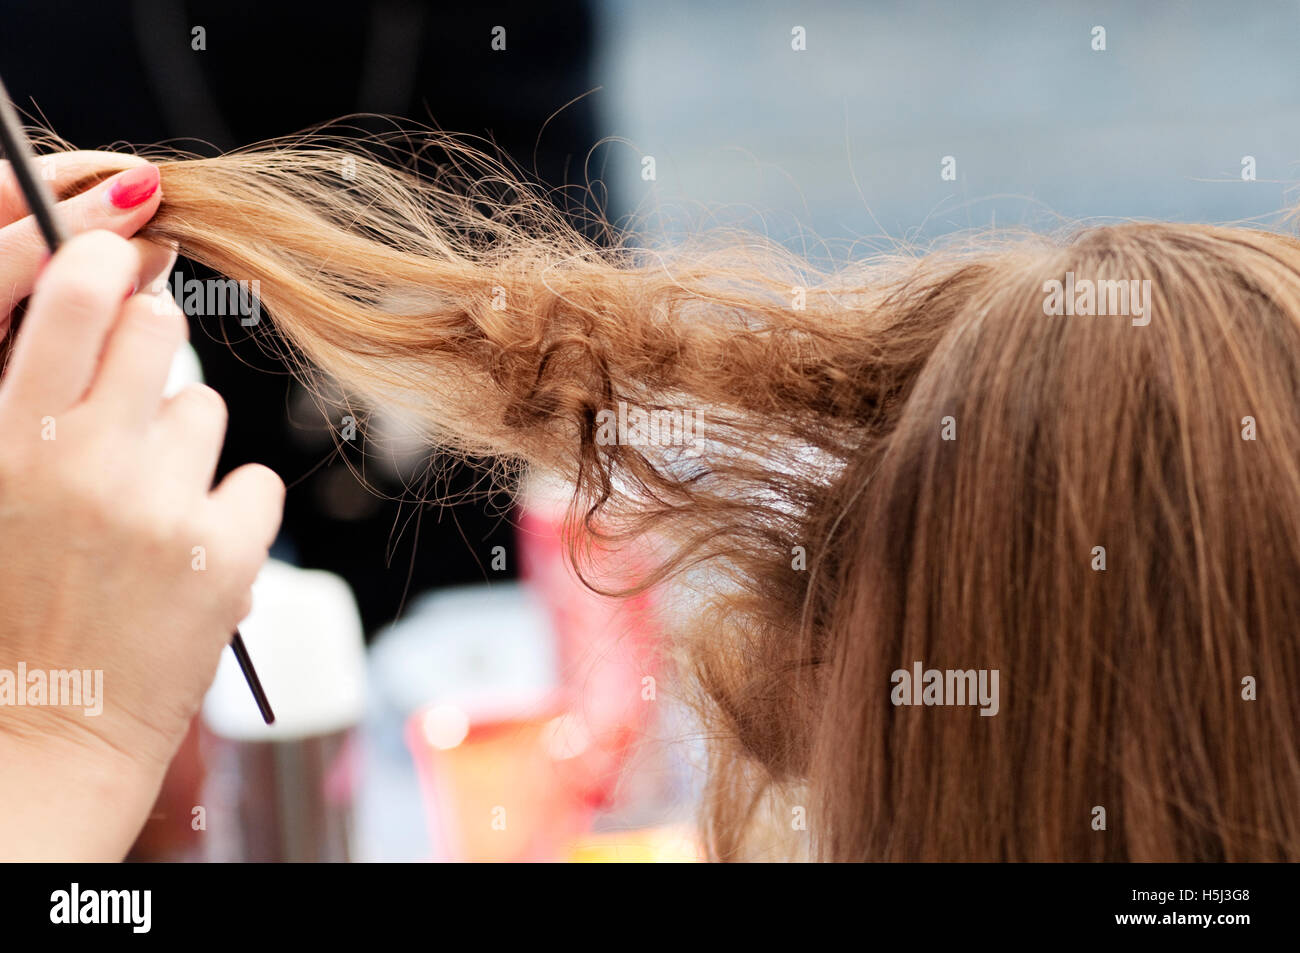 Female Client Having a Blow Dry in a Hairdressing Salon - Stock Image